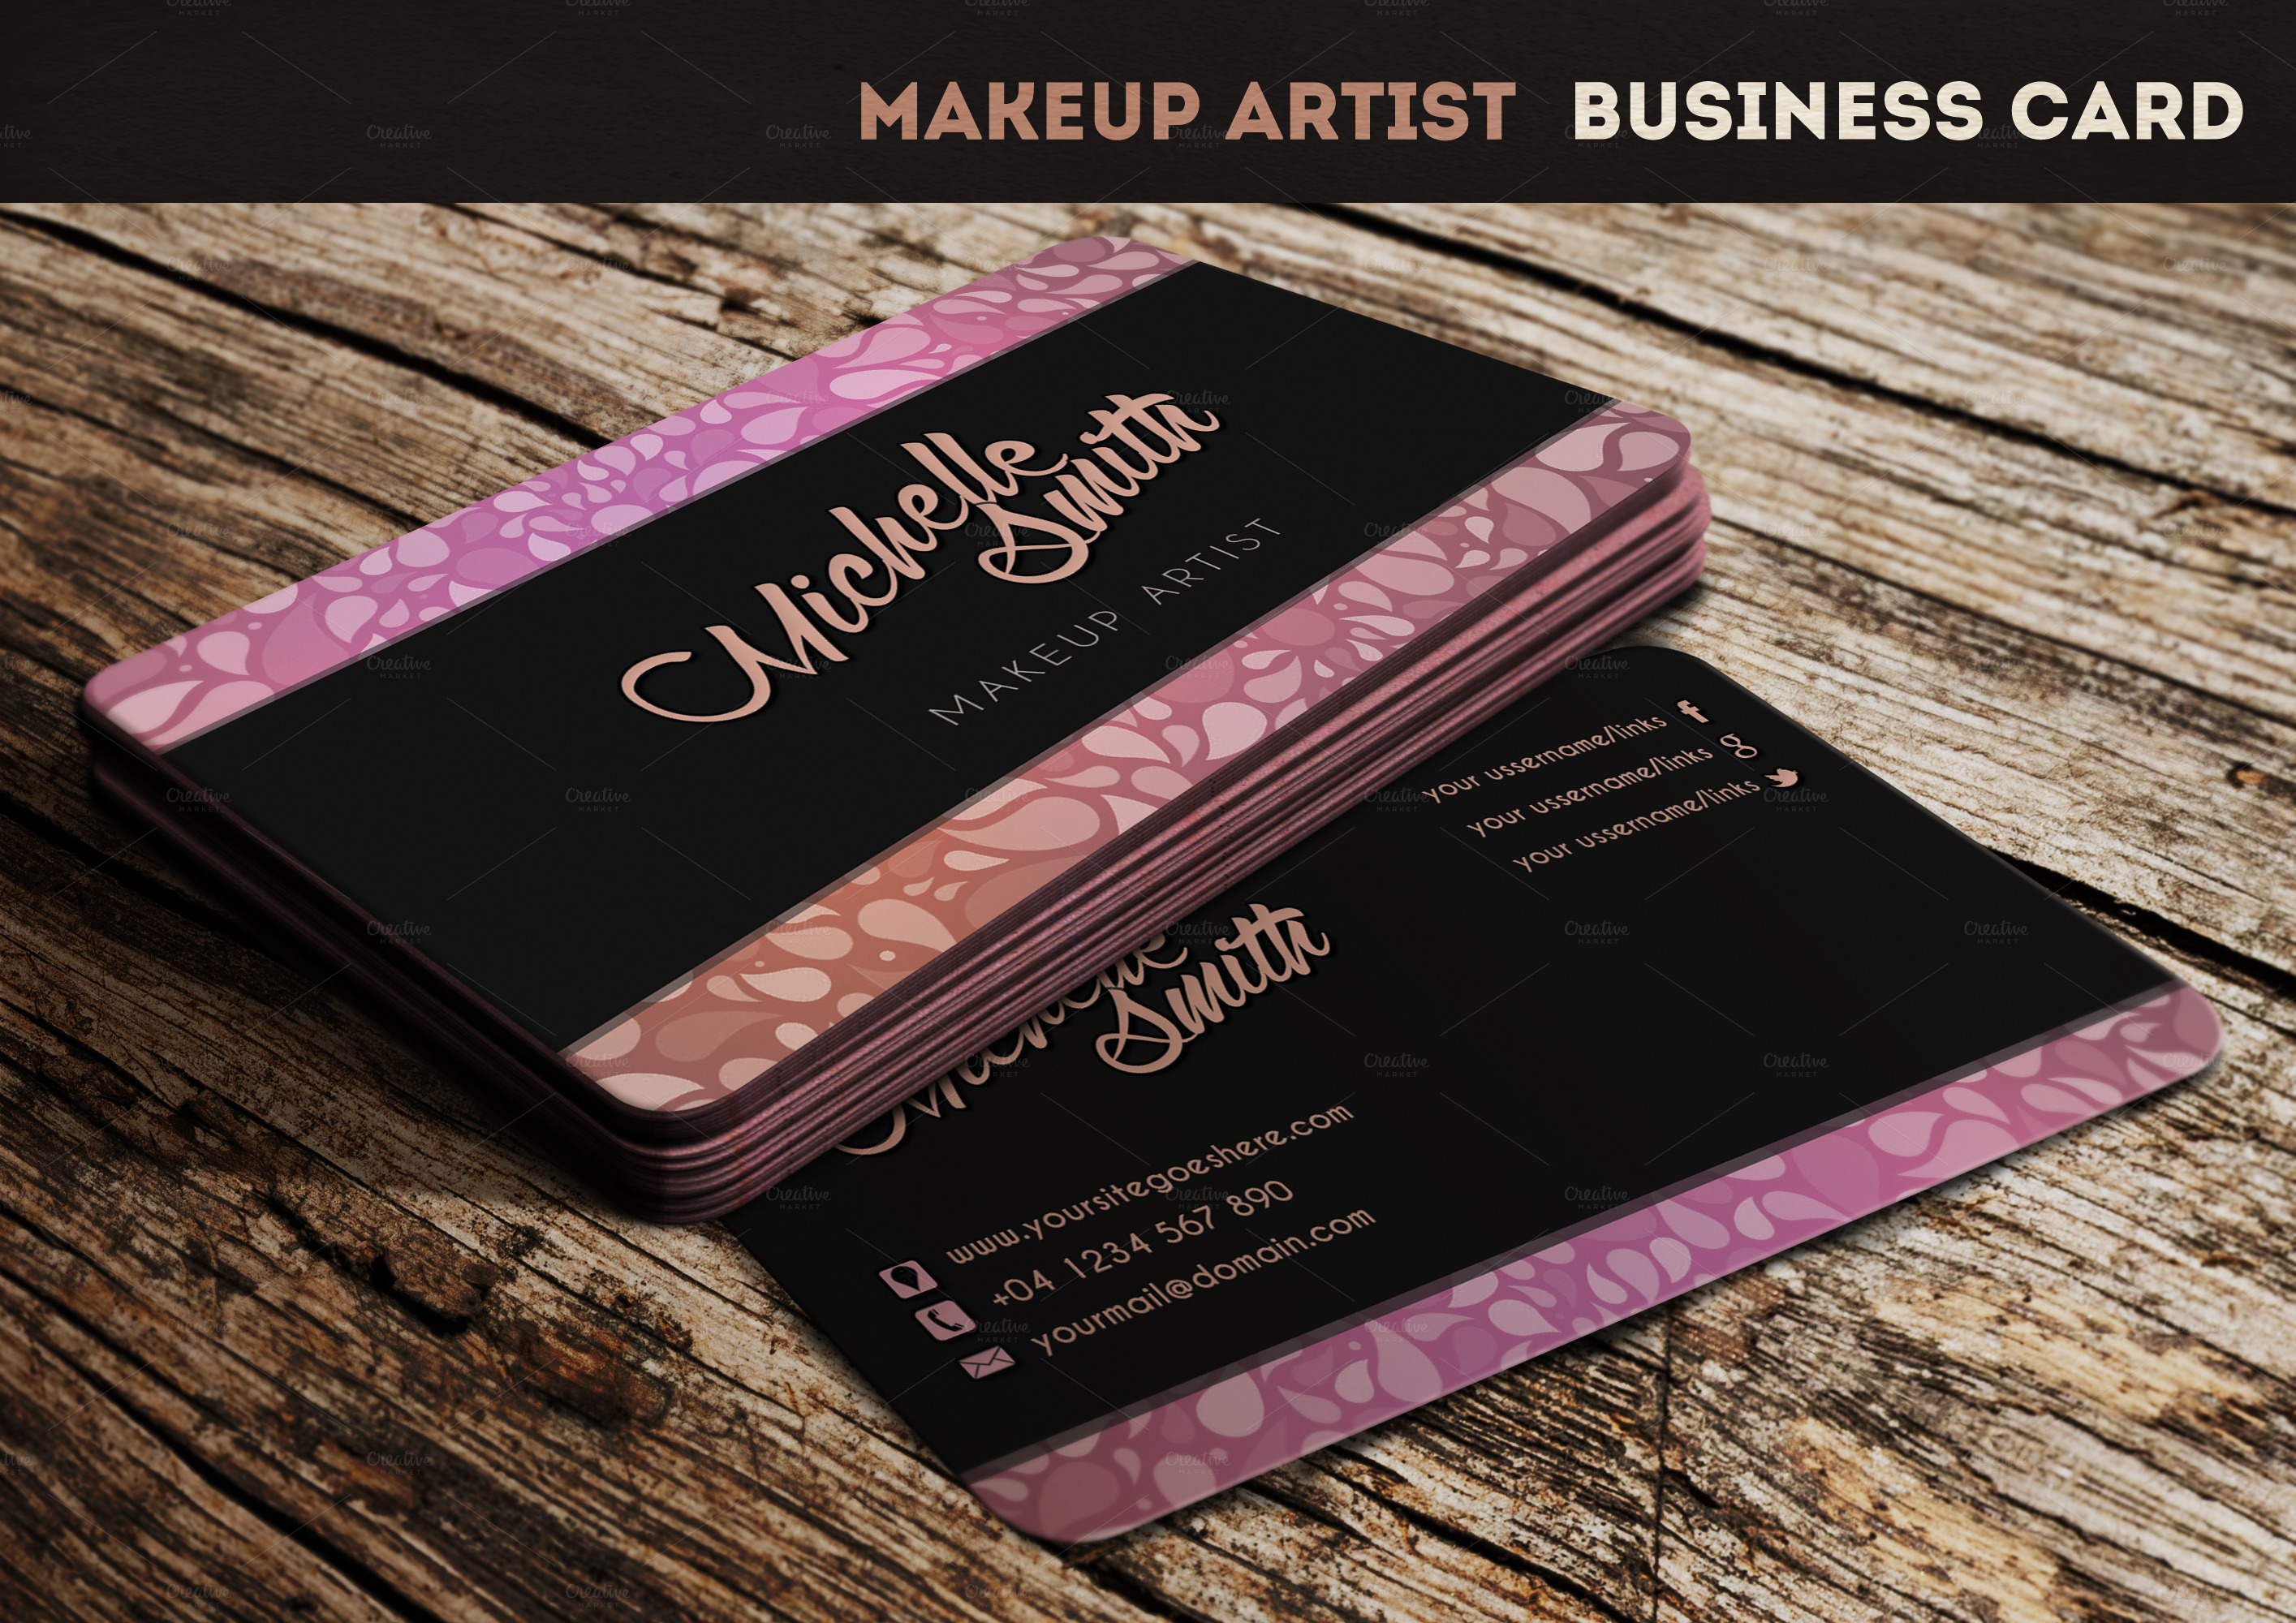 Makeup artist business cards templates business card sample makeup artist business cards templates colourmoves